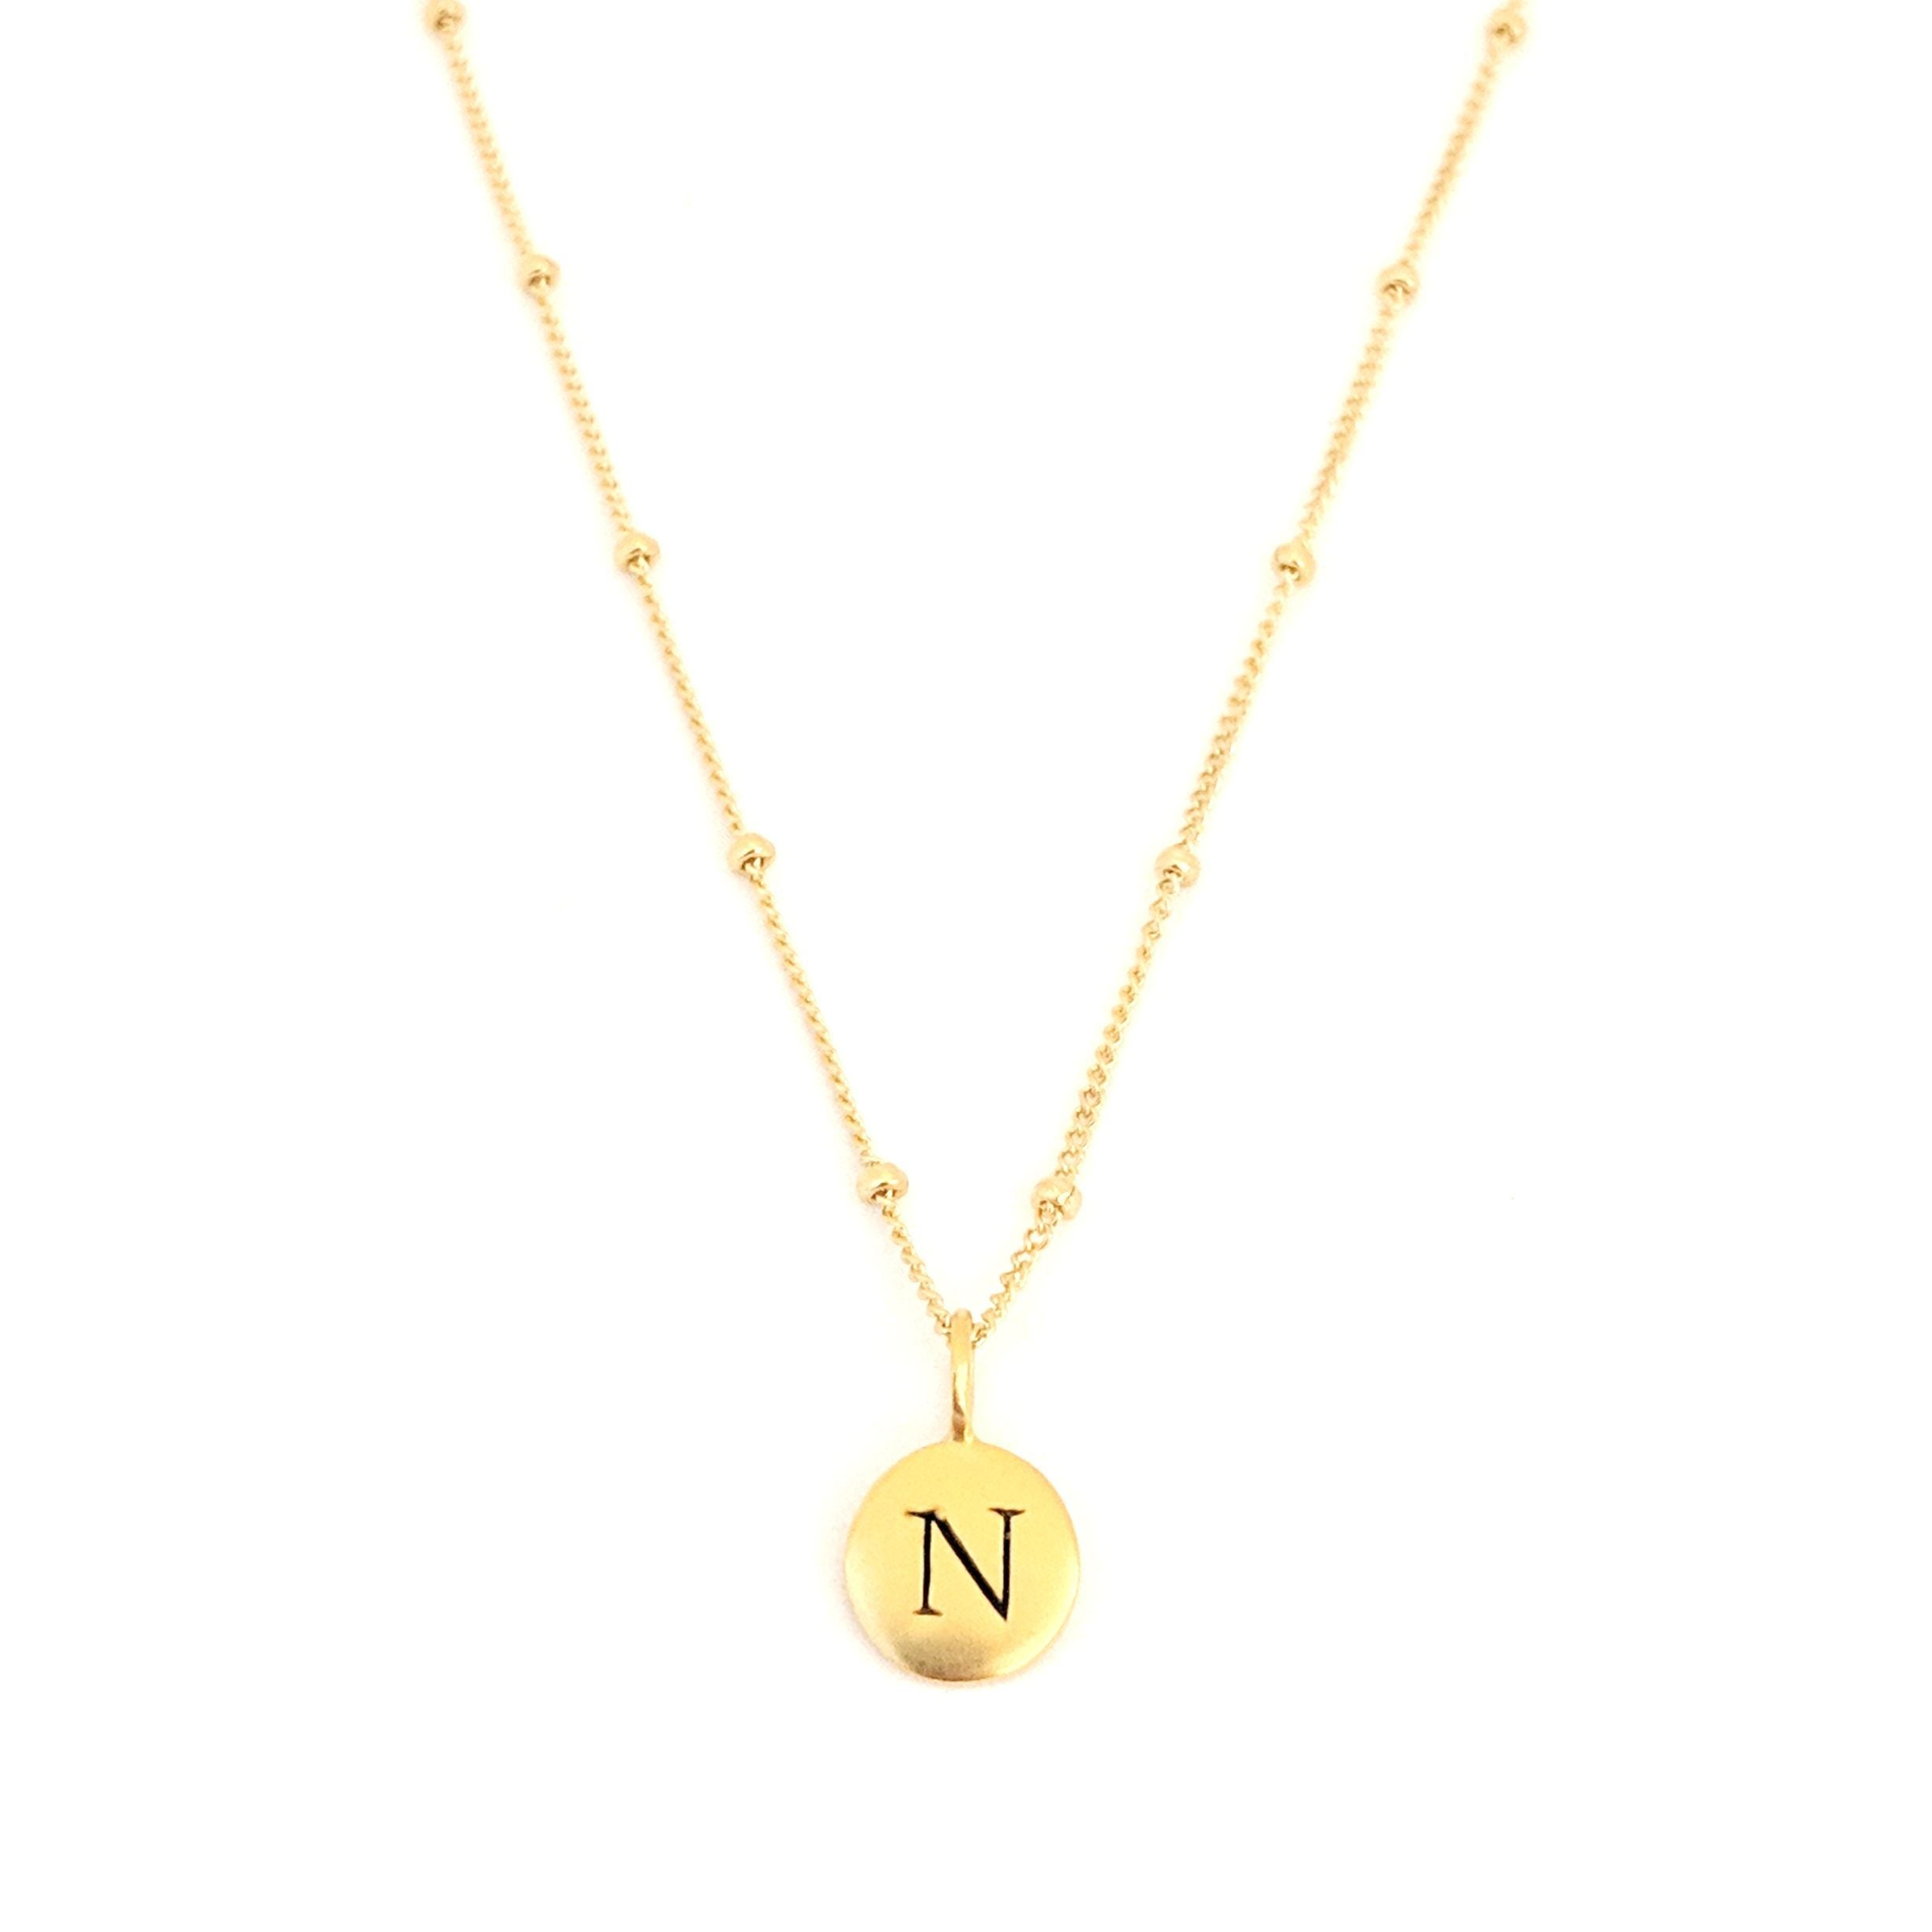 """N"" Mayfair Necklace"